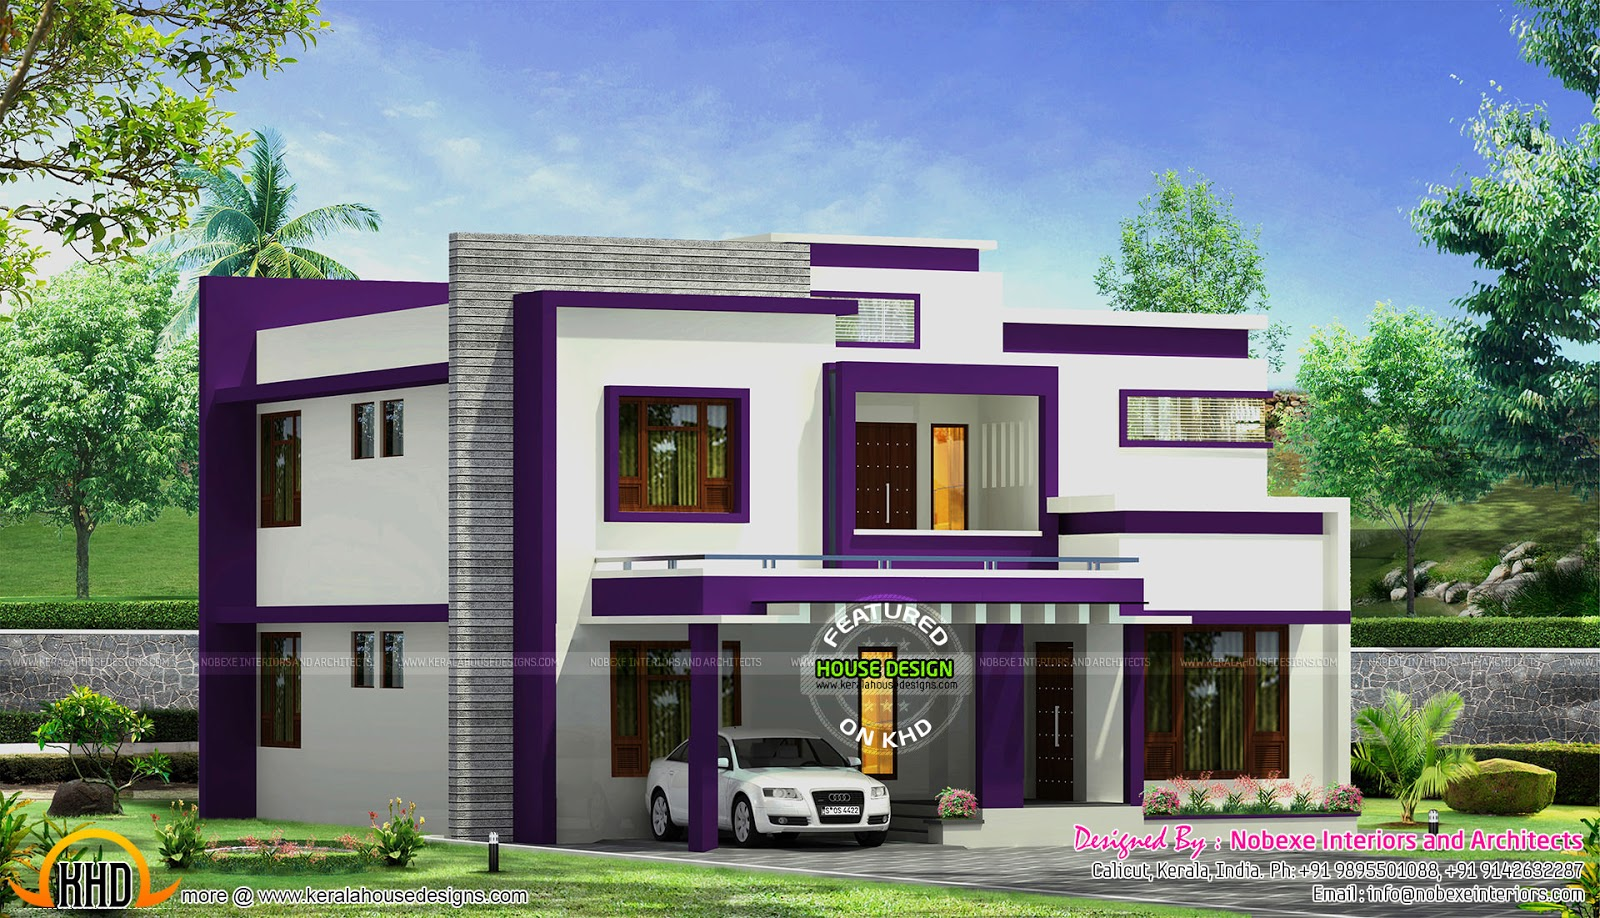 Contemporary home design by nobexe interiors kerala home for Modern house designs and floor plans in india